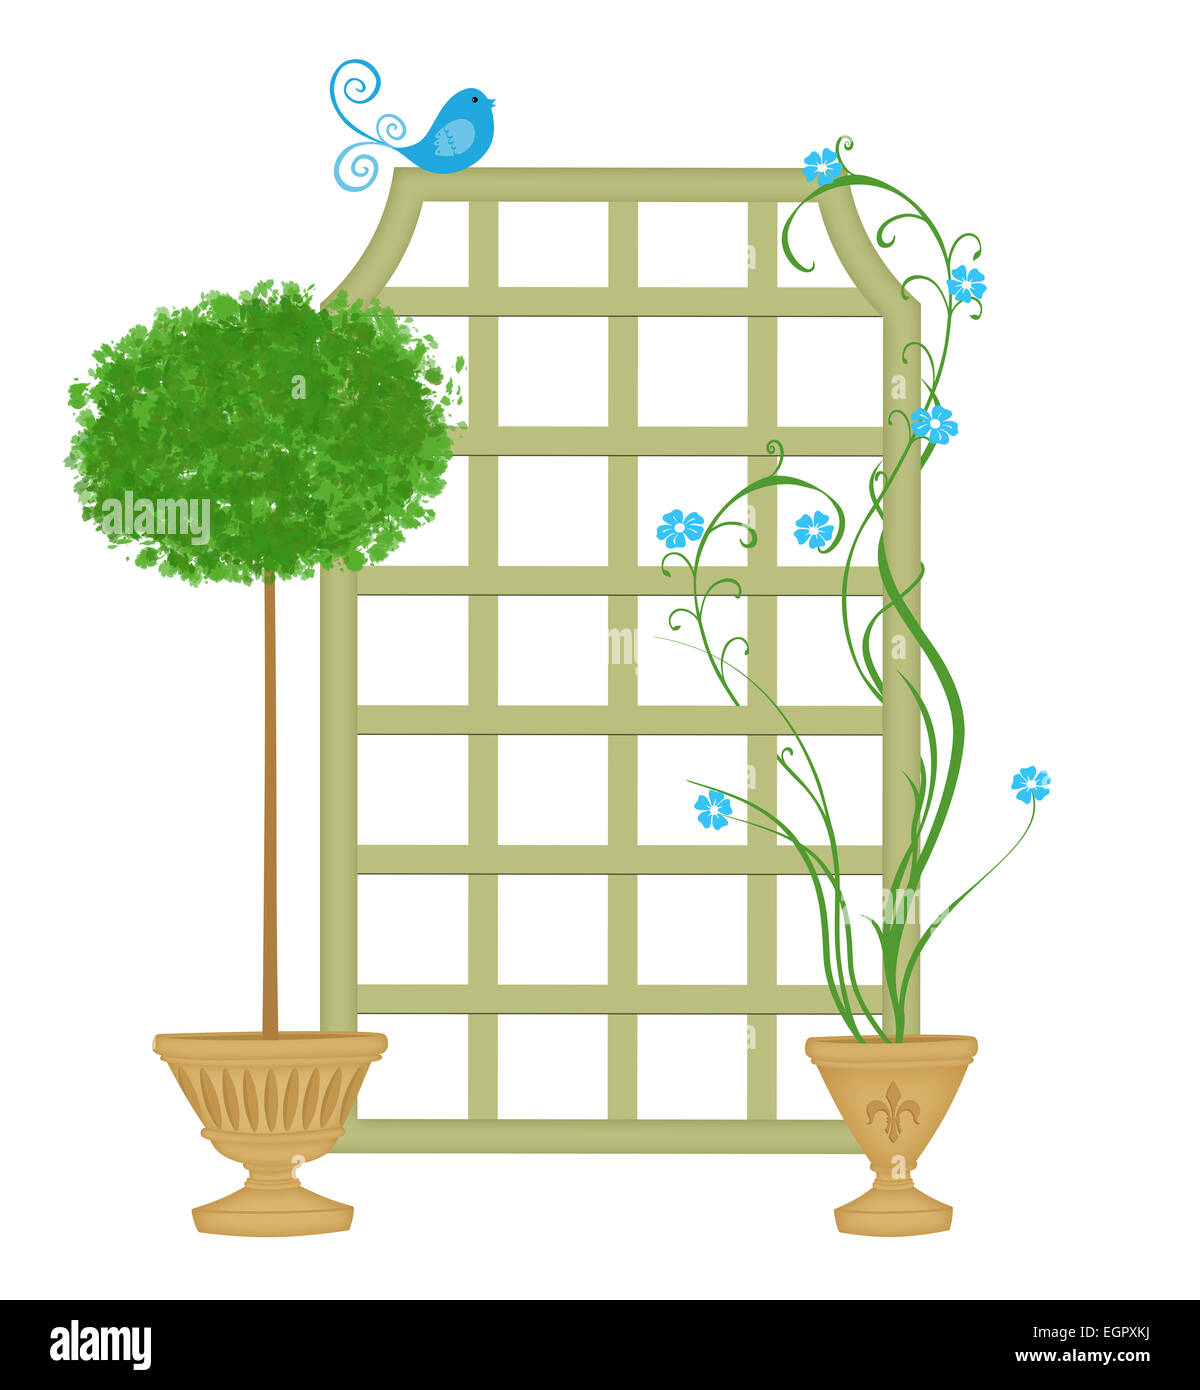 Trellis With Topiary and Twining Vines - Stock Image